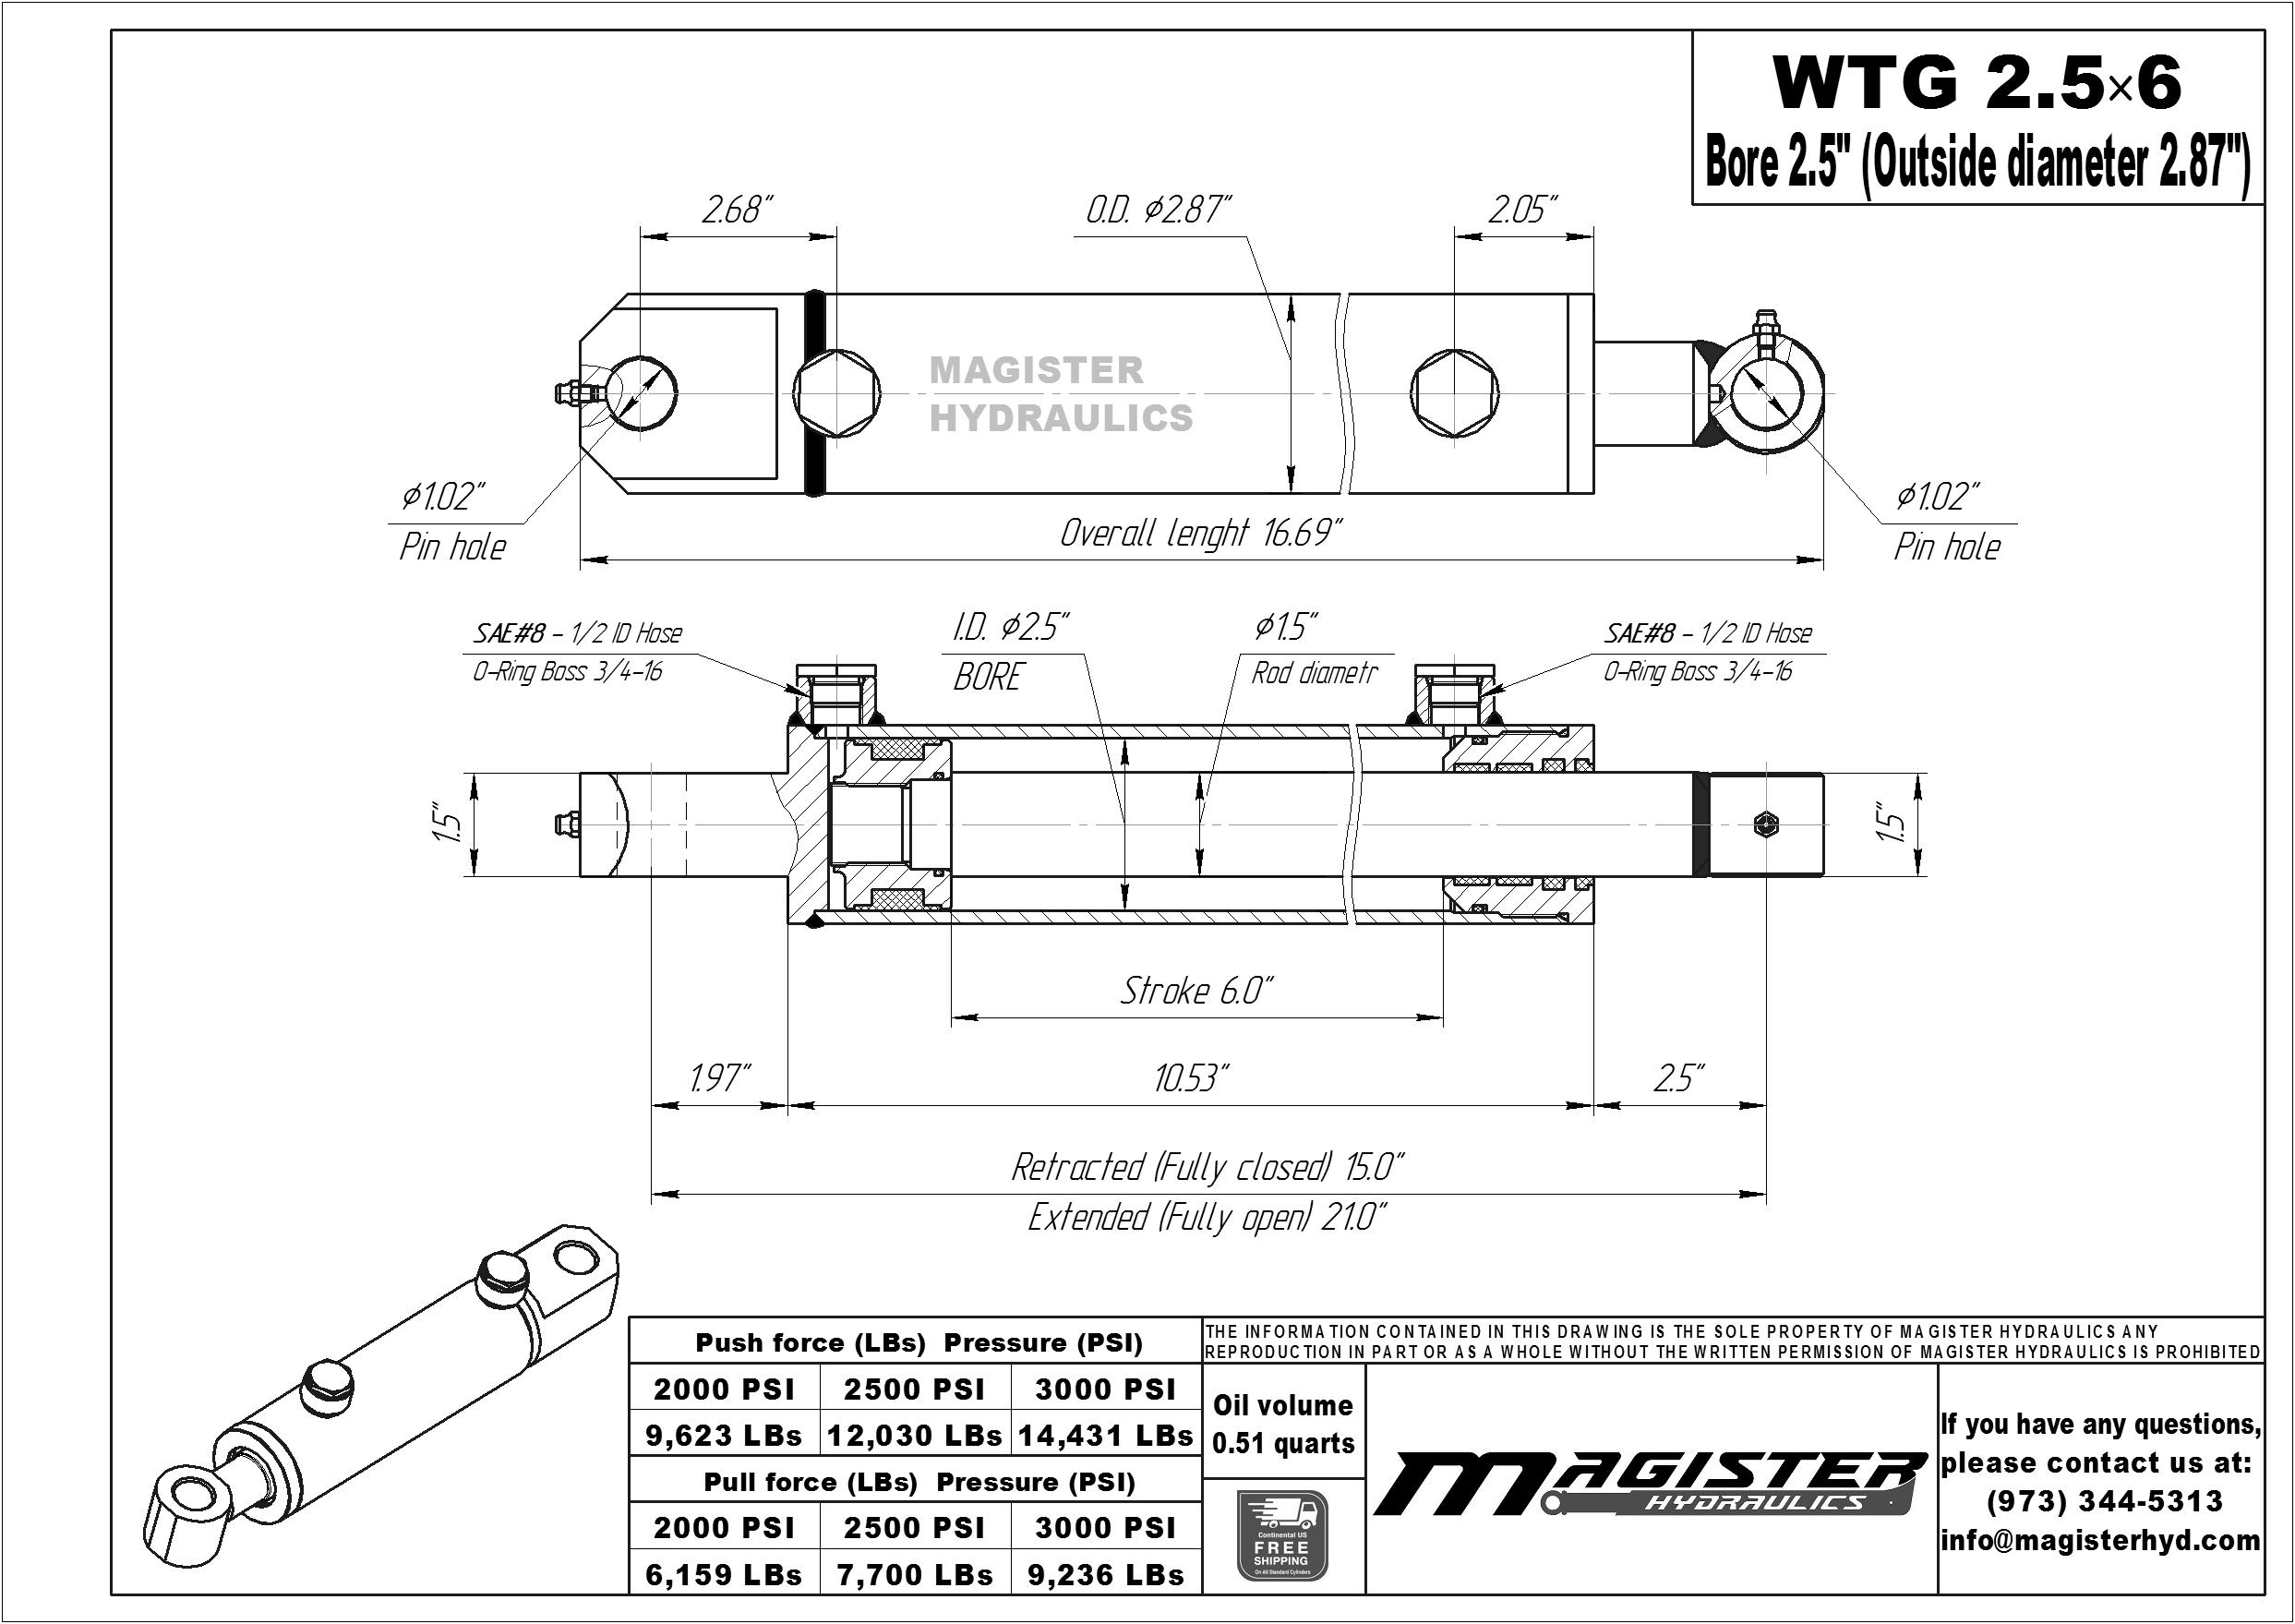 2.5 bore x 6 stroke hydraulic cylinder, welded tang double acting cylinder | Magister Hydraulics